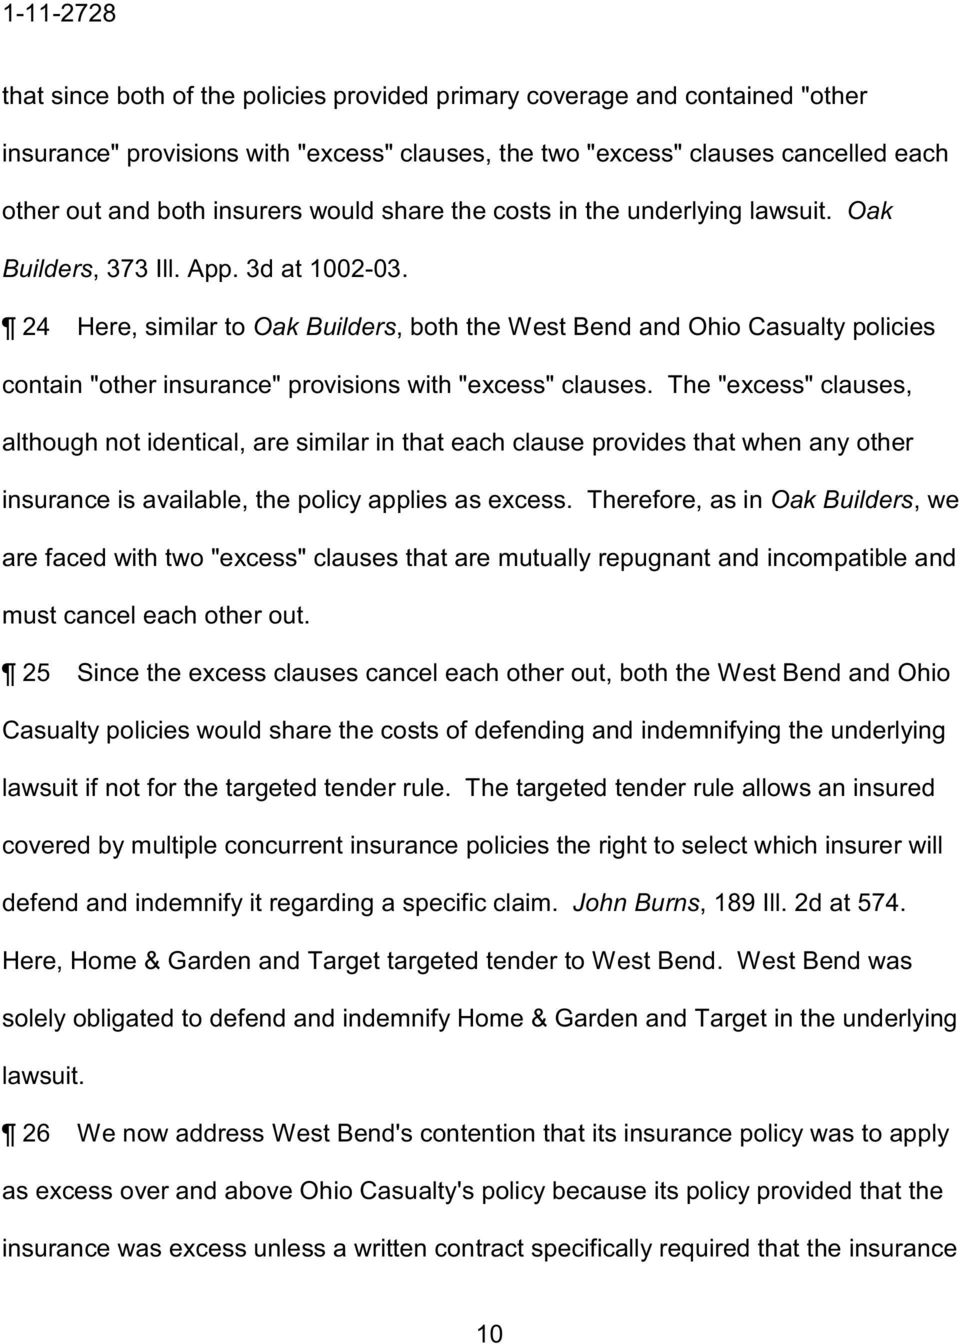 "24 Here, similar to Oak Builders, both the West Bend and Ohio Casualty policies contain ""other insurance"" provisions with ""excess"" clauses."